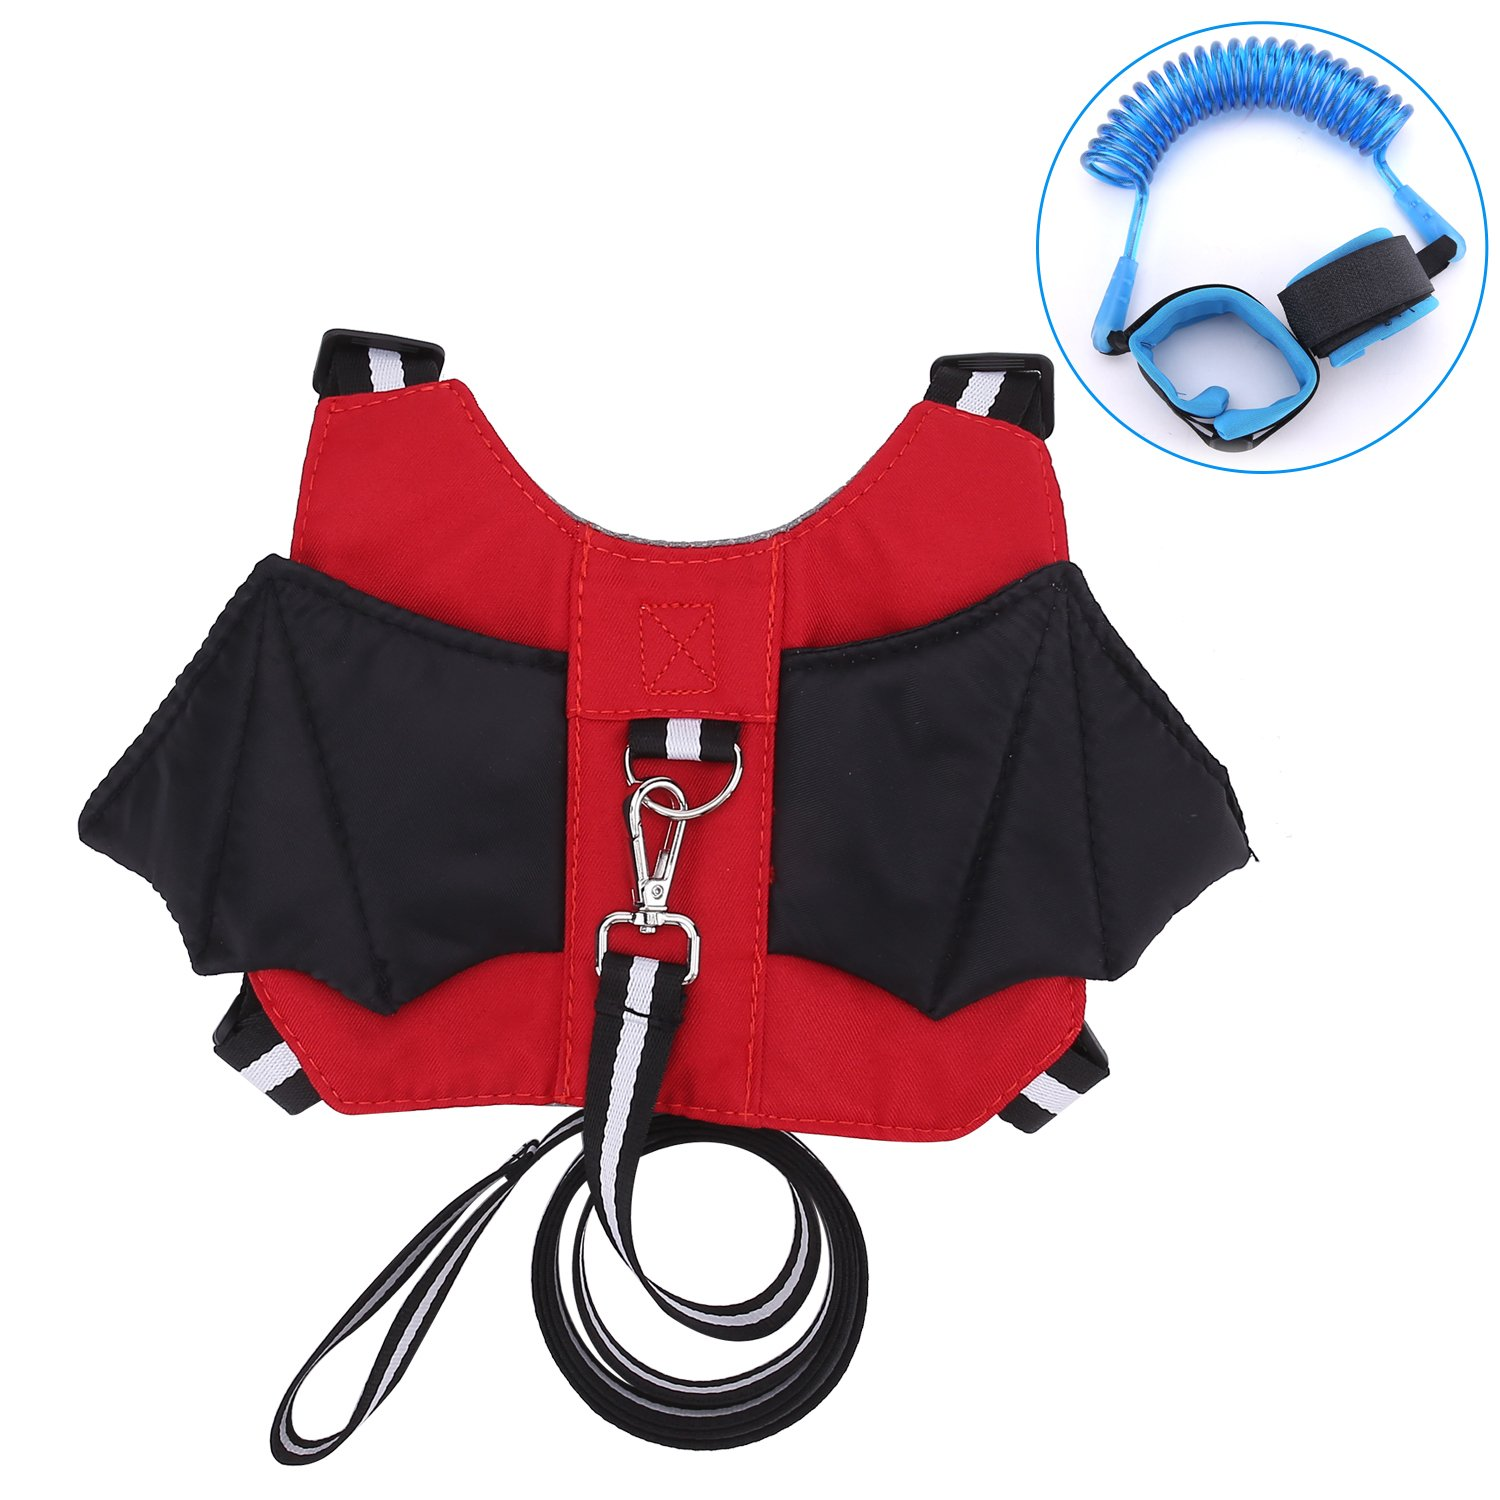 Anti-Lost Baby Safety Walking Harness & Leash Strap Backpack for 1 – 4 Years Old Boy & Girl for Travel Park Hiking + Bonus Safety Wrist Link JCSHHUB K2854215